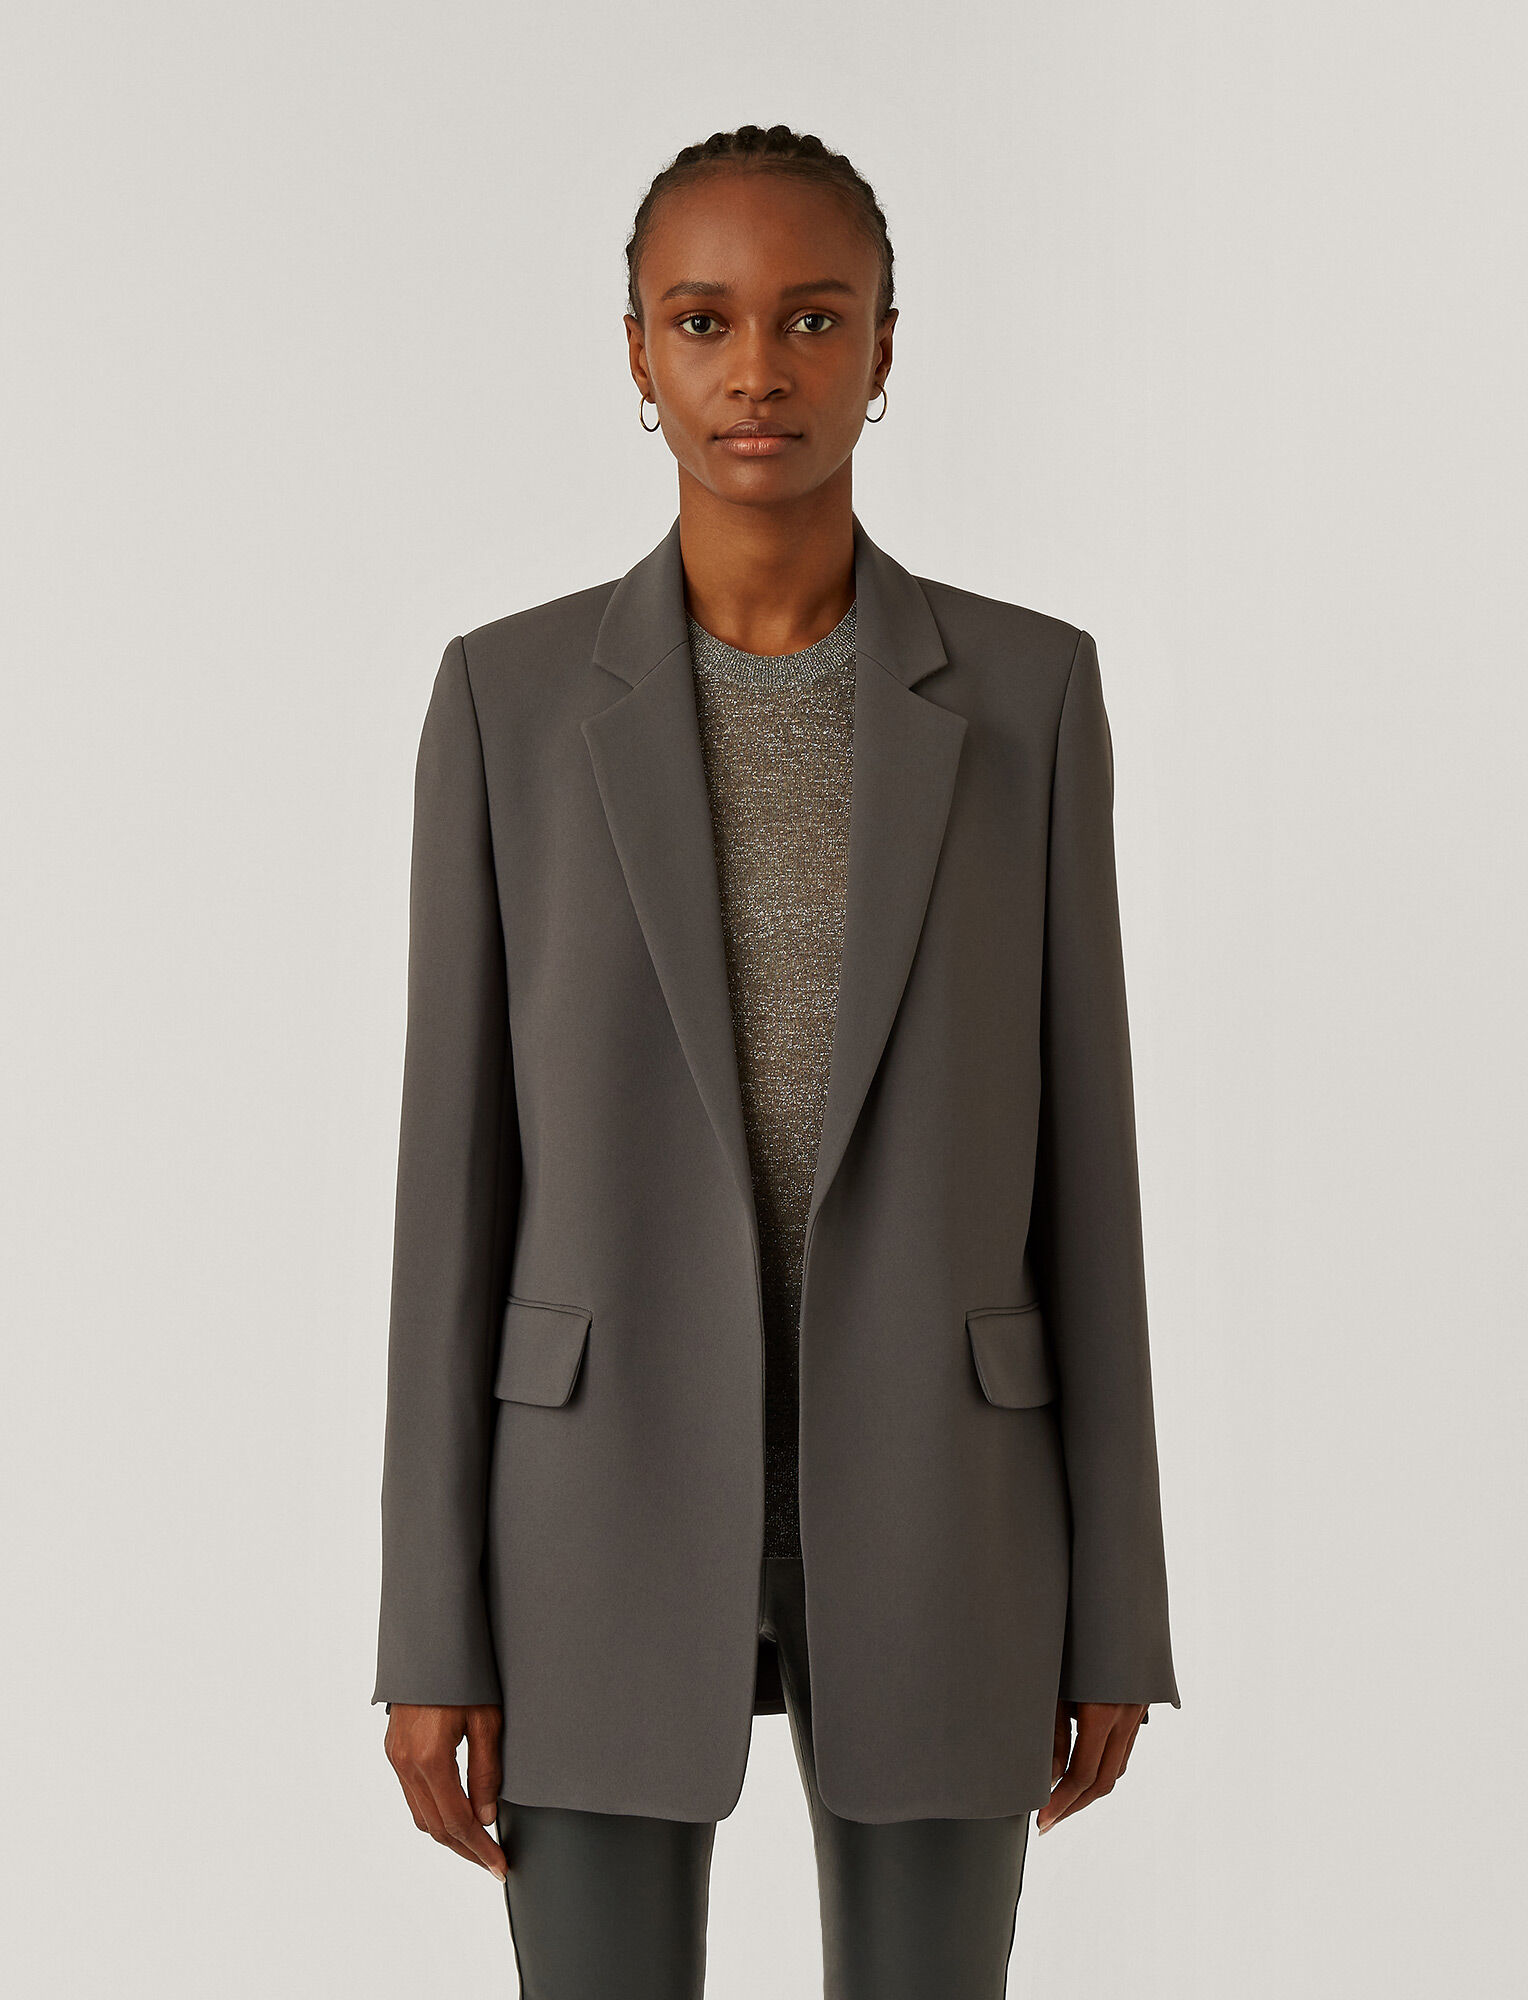 Joseph, New Cady Joan Jacket, in CAPERS